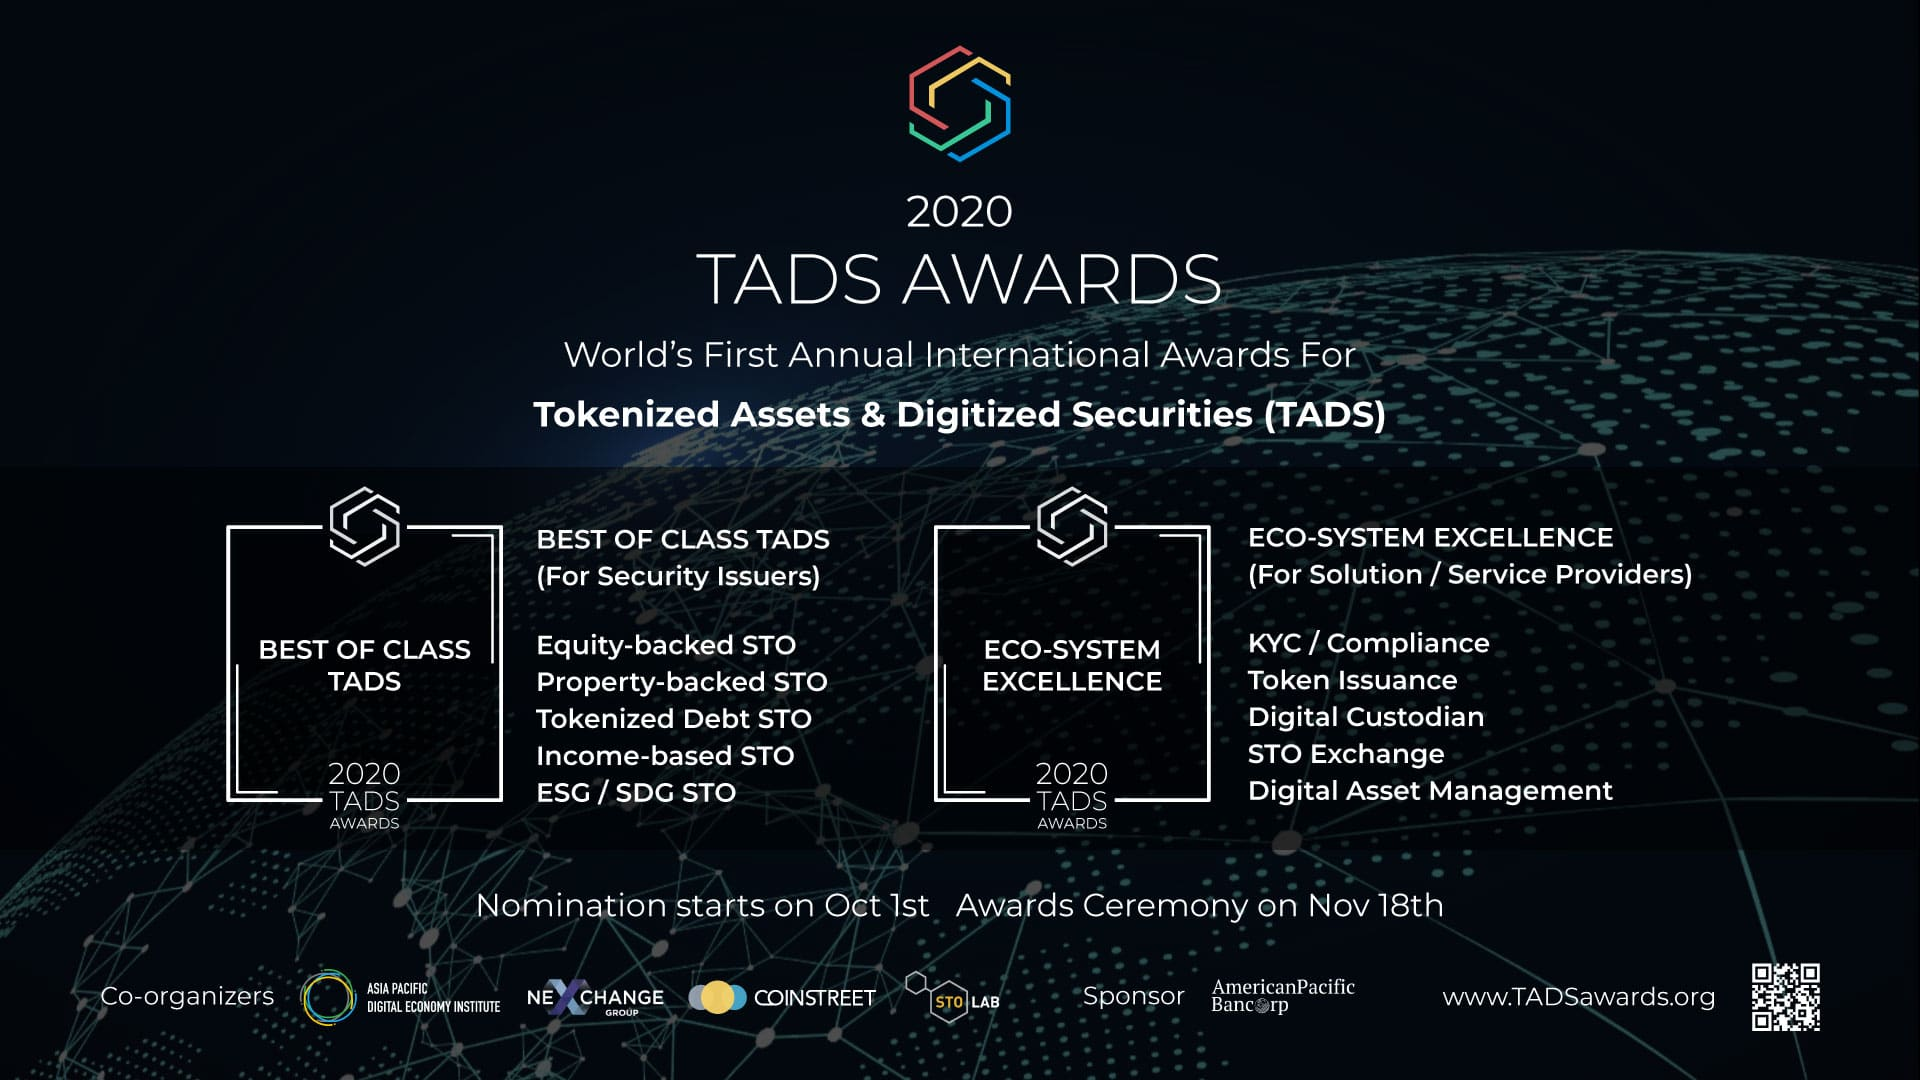 TADS AWARDS:The World's First Annual International Awards For Tokenized Assets